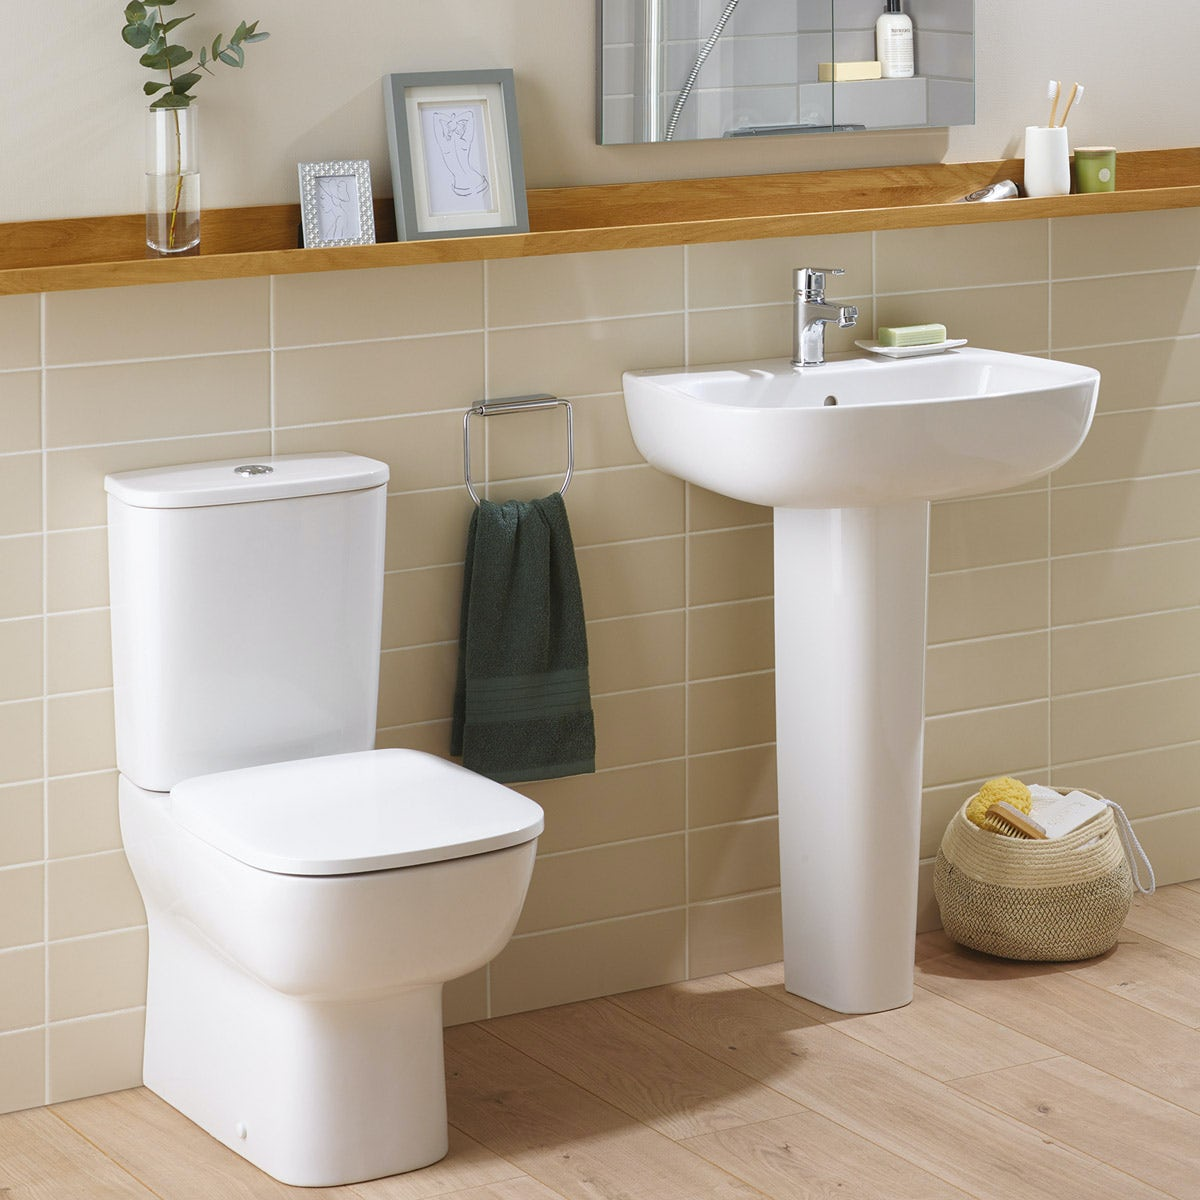 Ideal Standard Studio Echo cloakroom suite with close coupled toilet and full pedestal basin 550mm